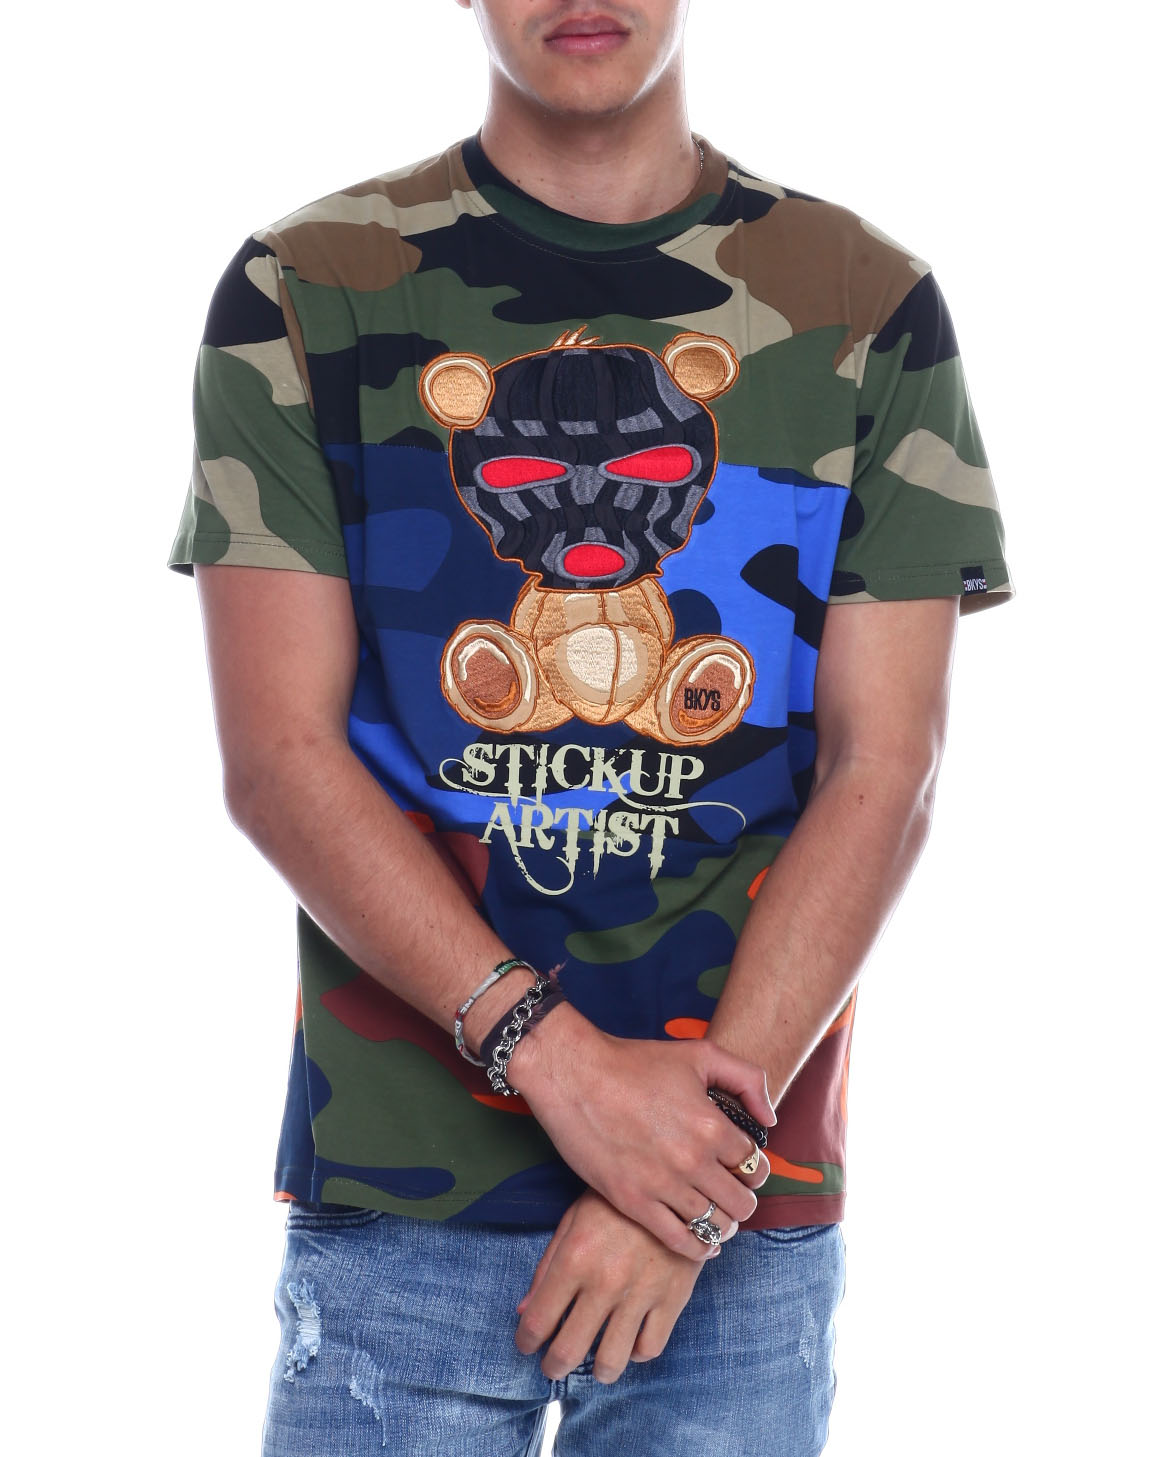 9d4caf5c95fc Buy Stick Up Artist Tee Men's Shirts from Buyers Picks. Find Buyers ...